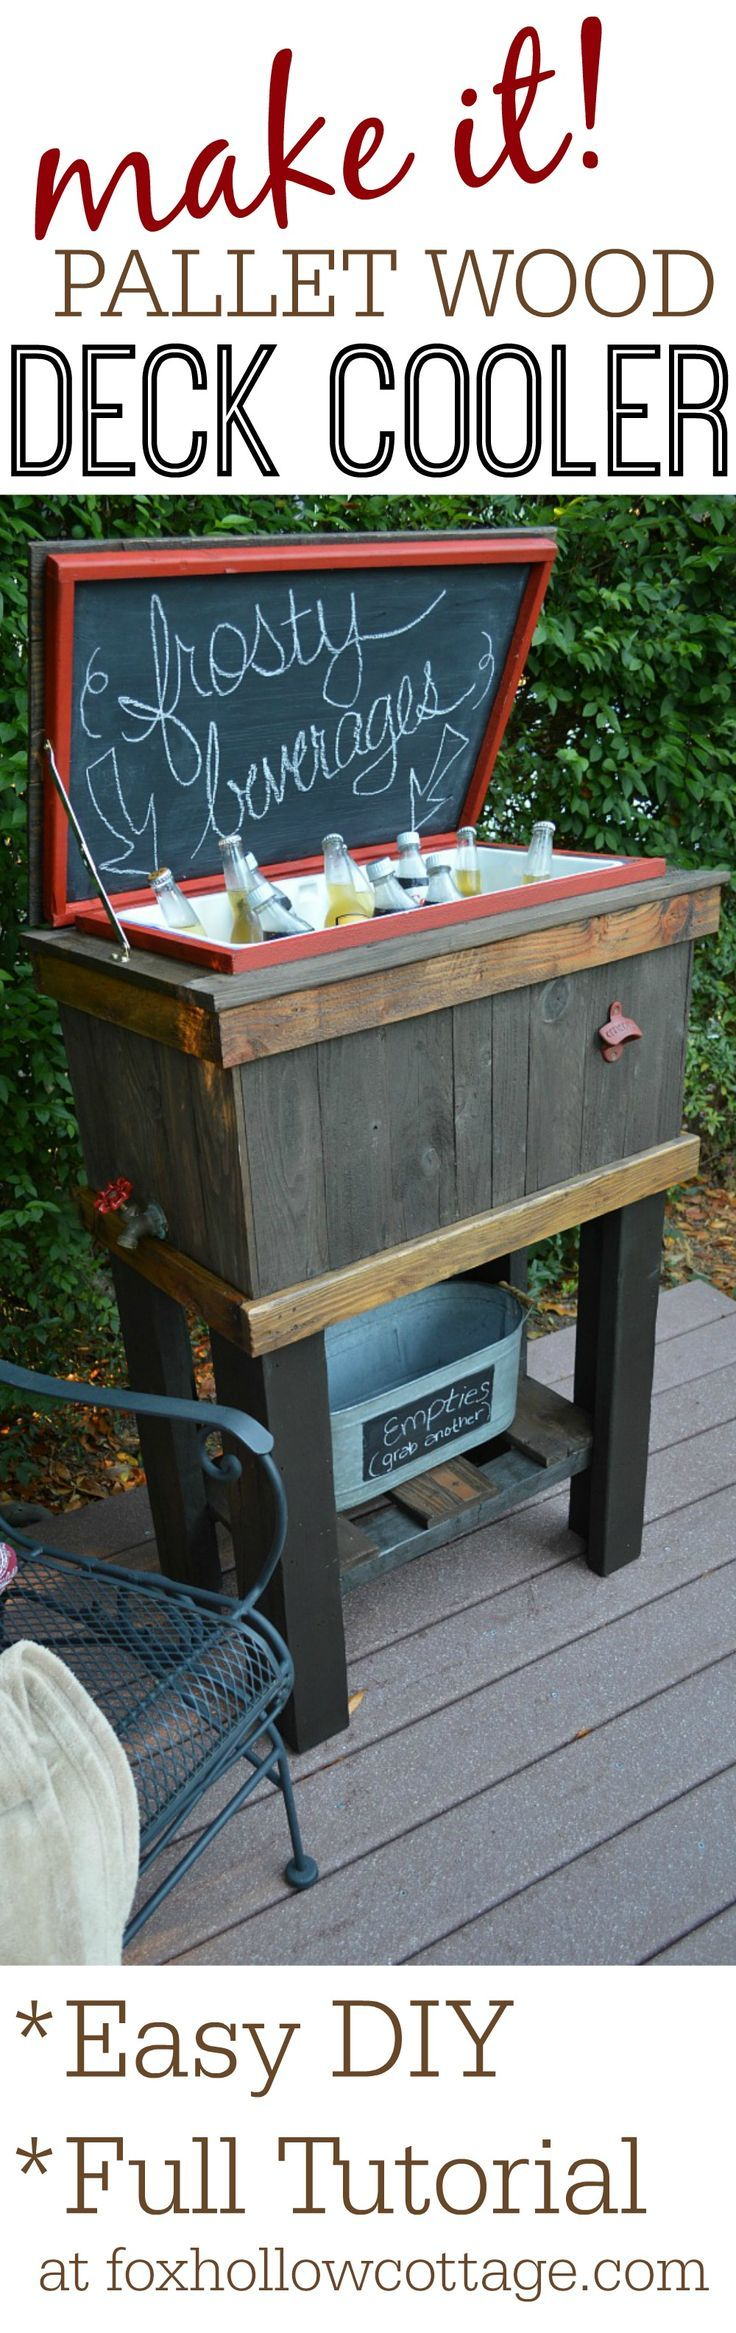 How-To Build A Wood Cooler Stand | DIY Weekend Pallet Project Idea for Porch Patio Deck or Tailgating! Full tutorial at foxhollowcottage.com